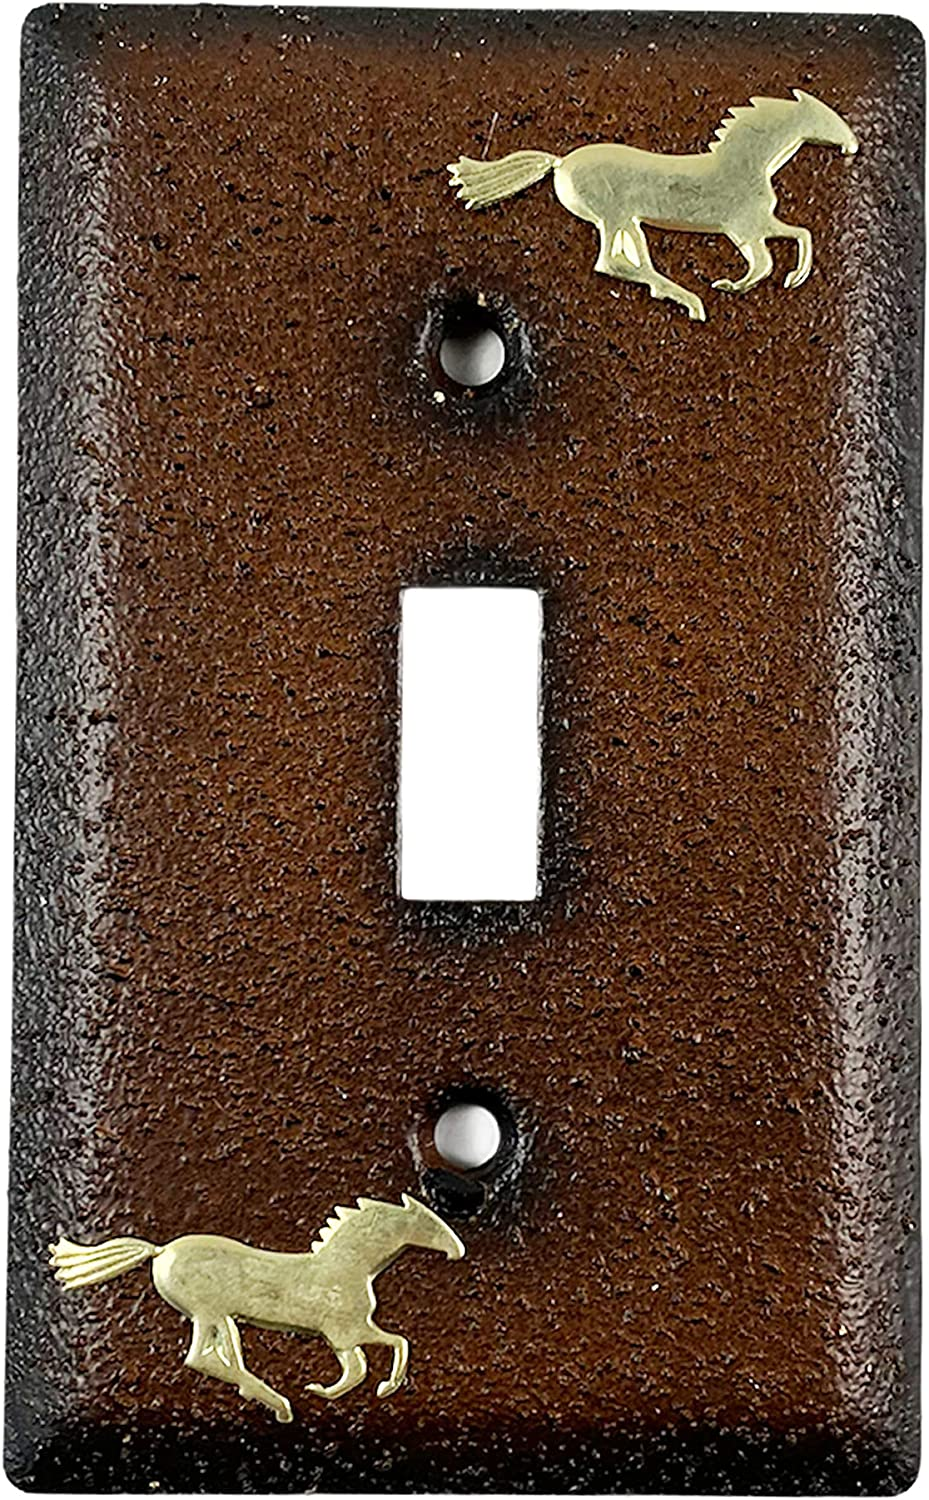 Urbalabs Western Cowboy Horse Rustic Metal Textured Rust Decorative Light Switch Outlet Wall Plate Covers Country Home Rustic Light Switch Covers Single Double 2 Gang Switch Plates (Single Switch)